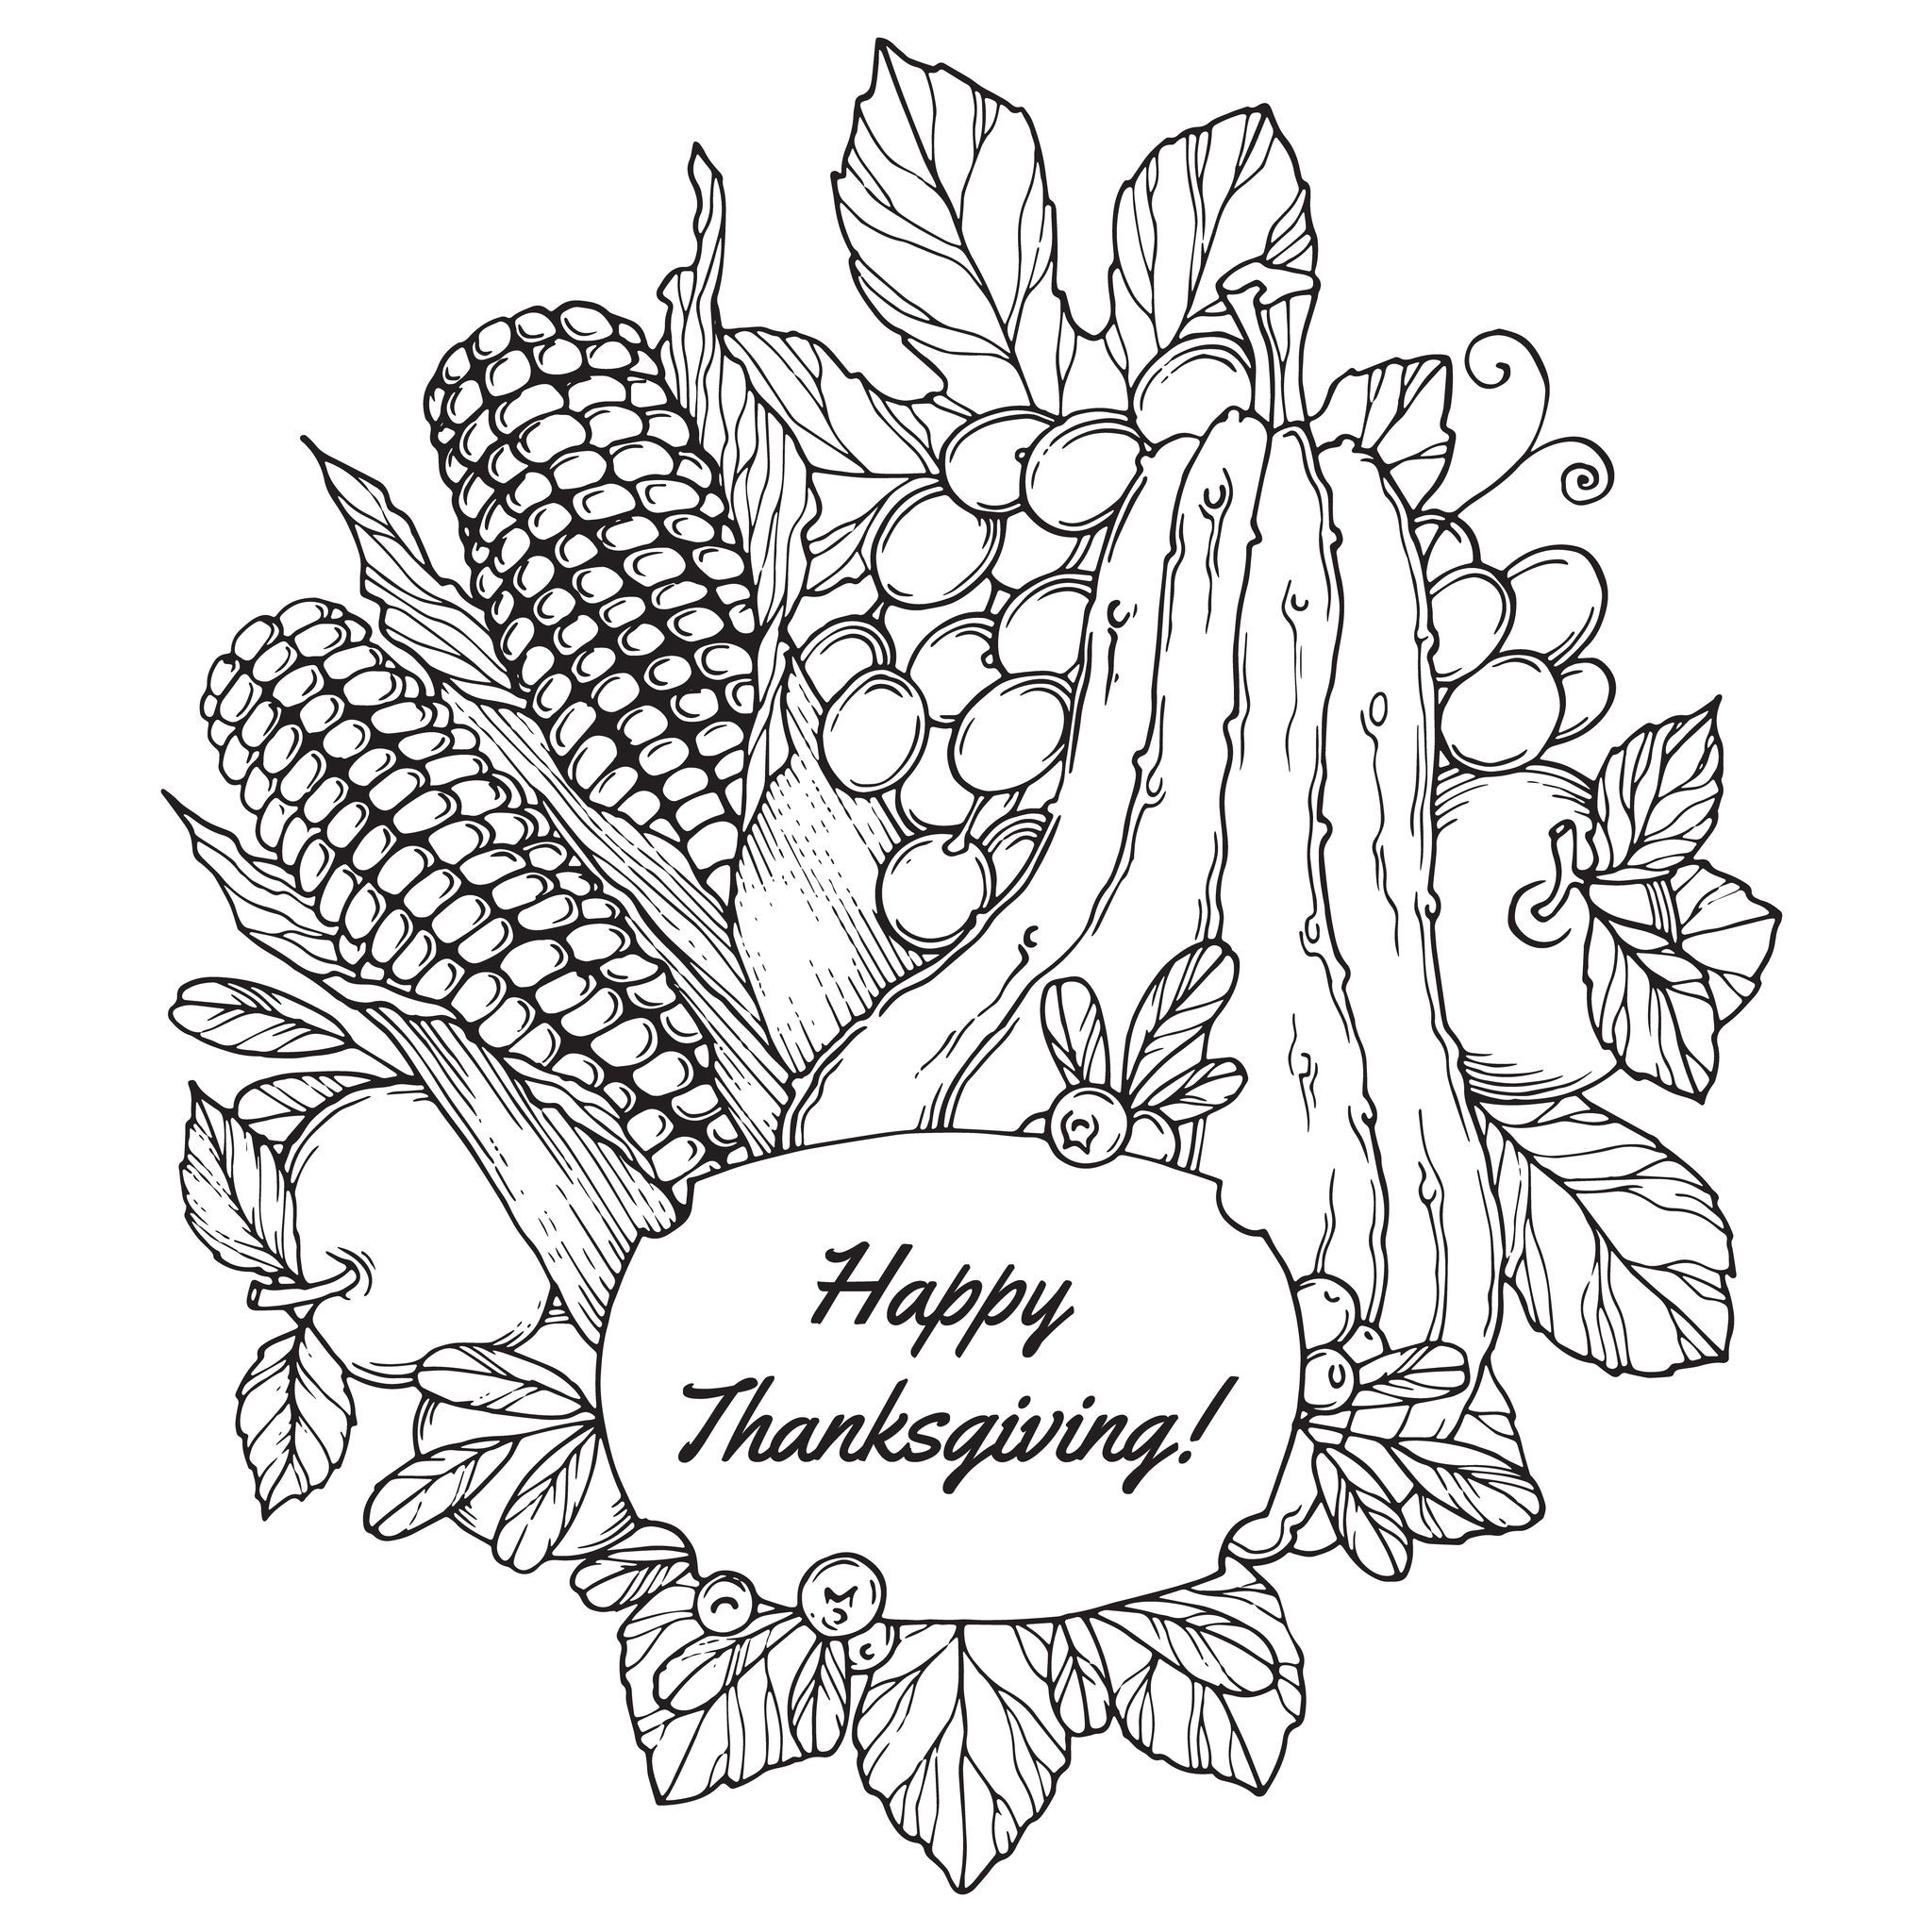 Coloring Pages For Adults: Thanksgiving Coloring Pages For Adults